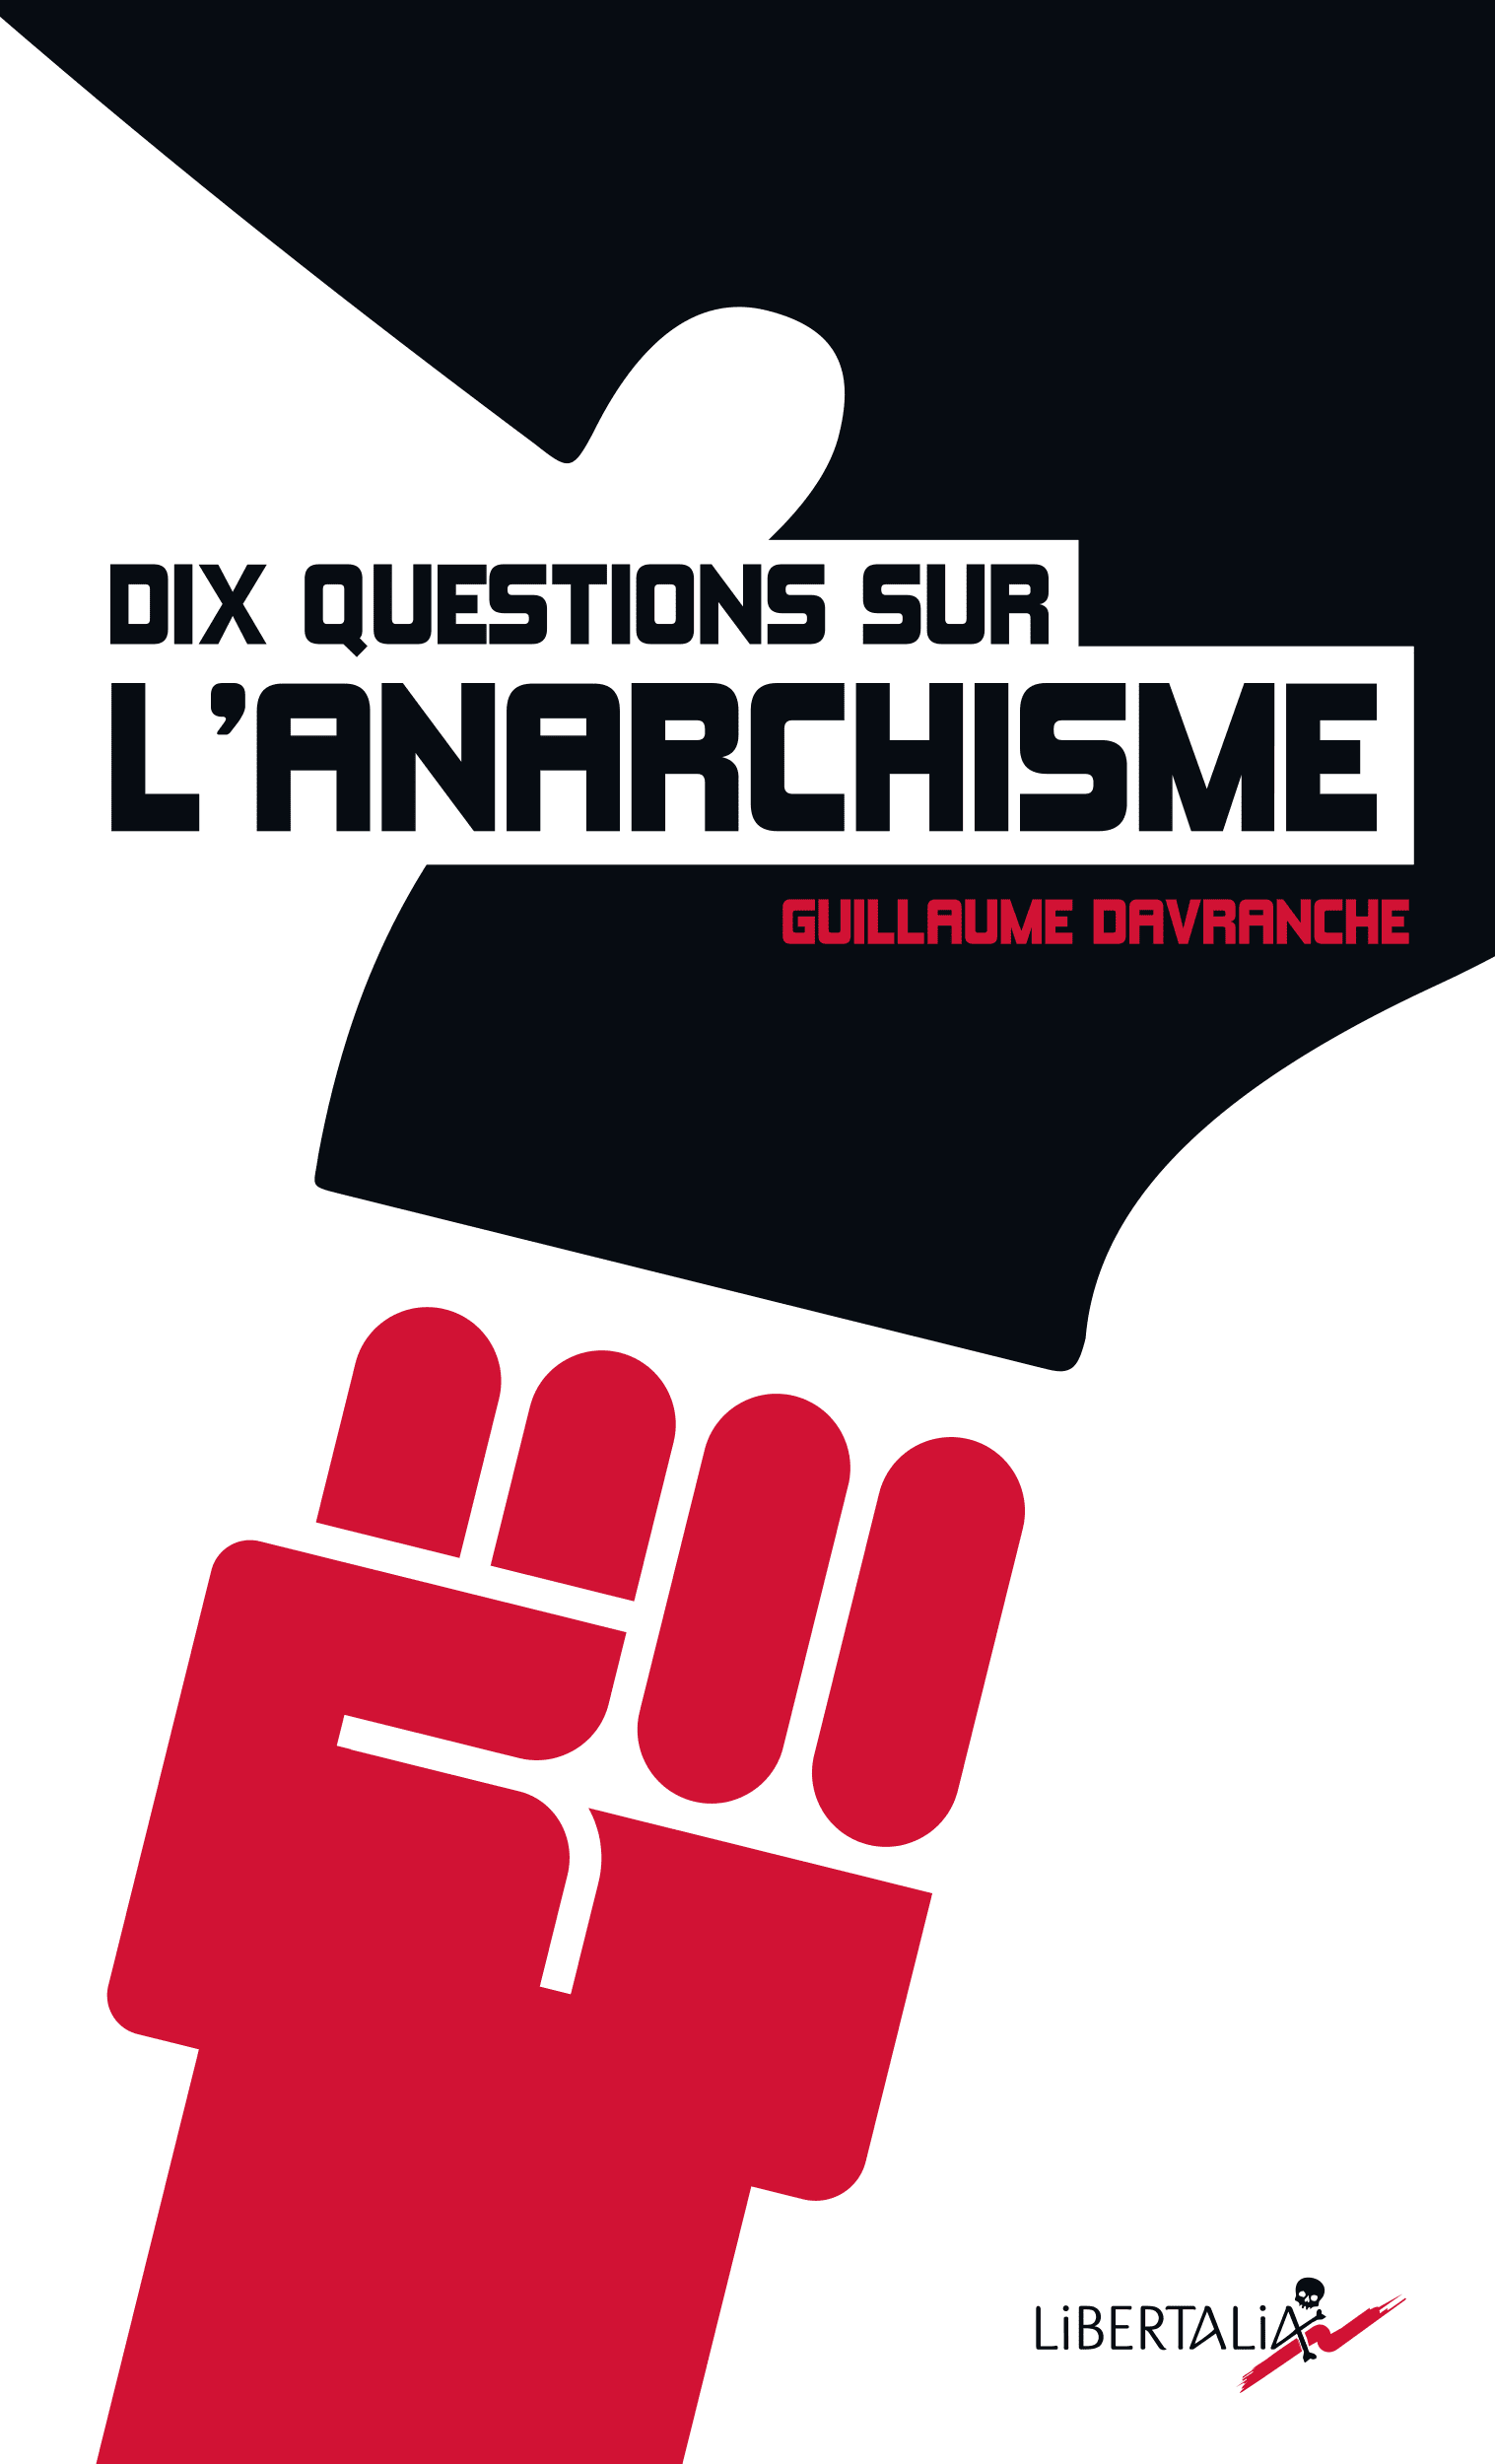 Dix questions sur l'anarchisme